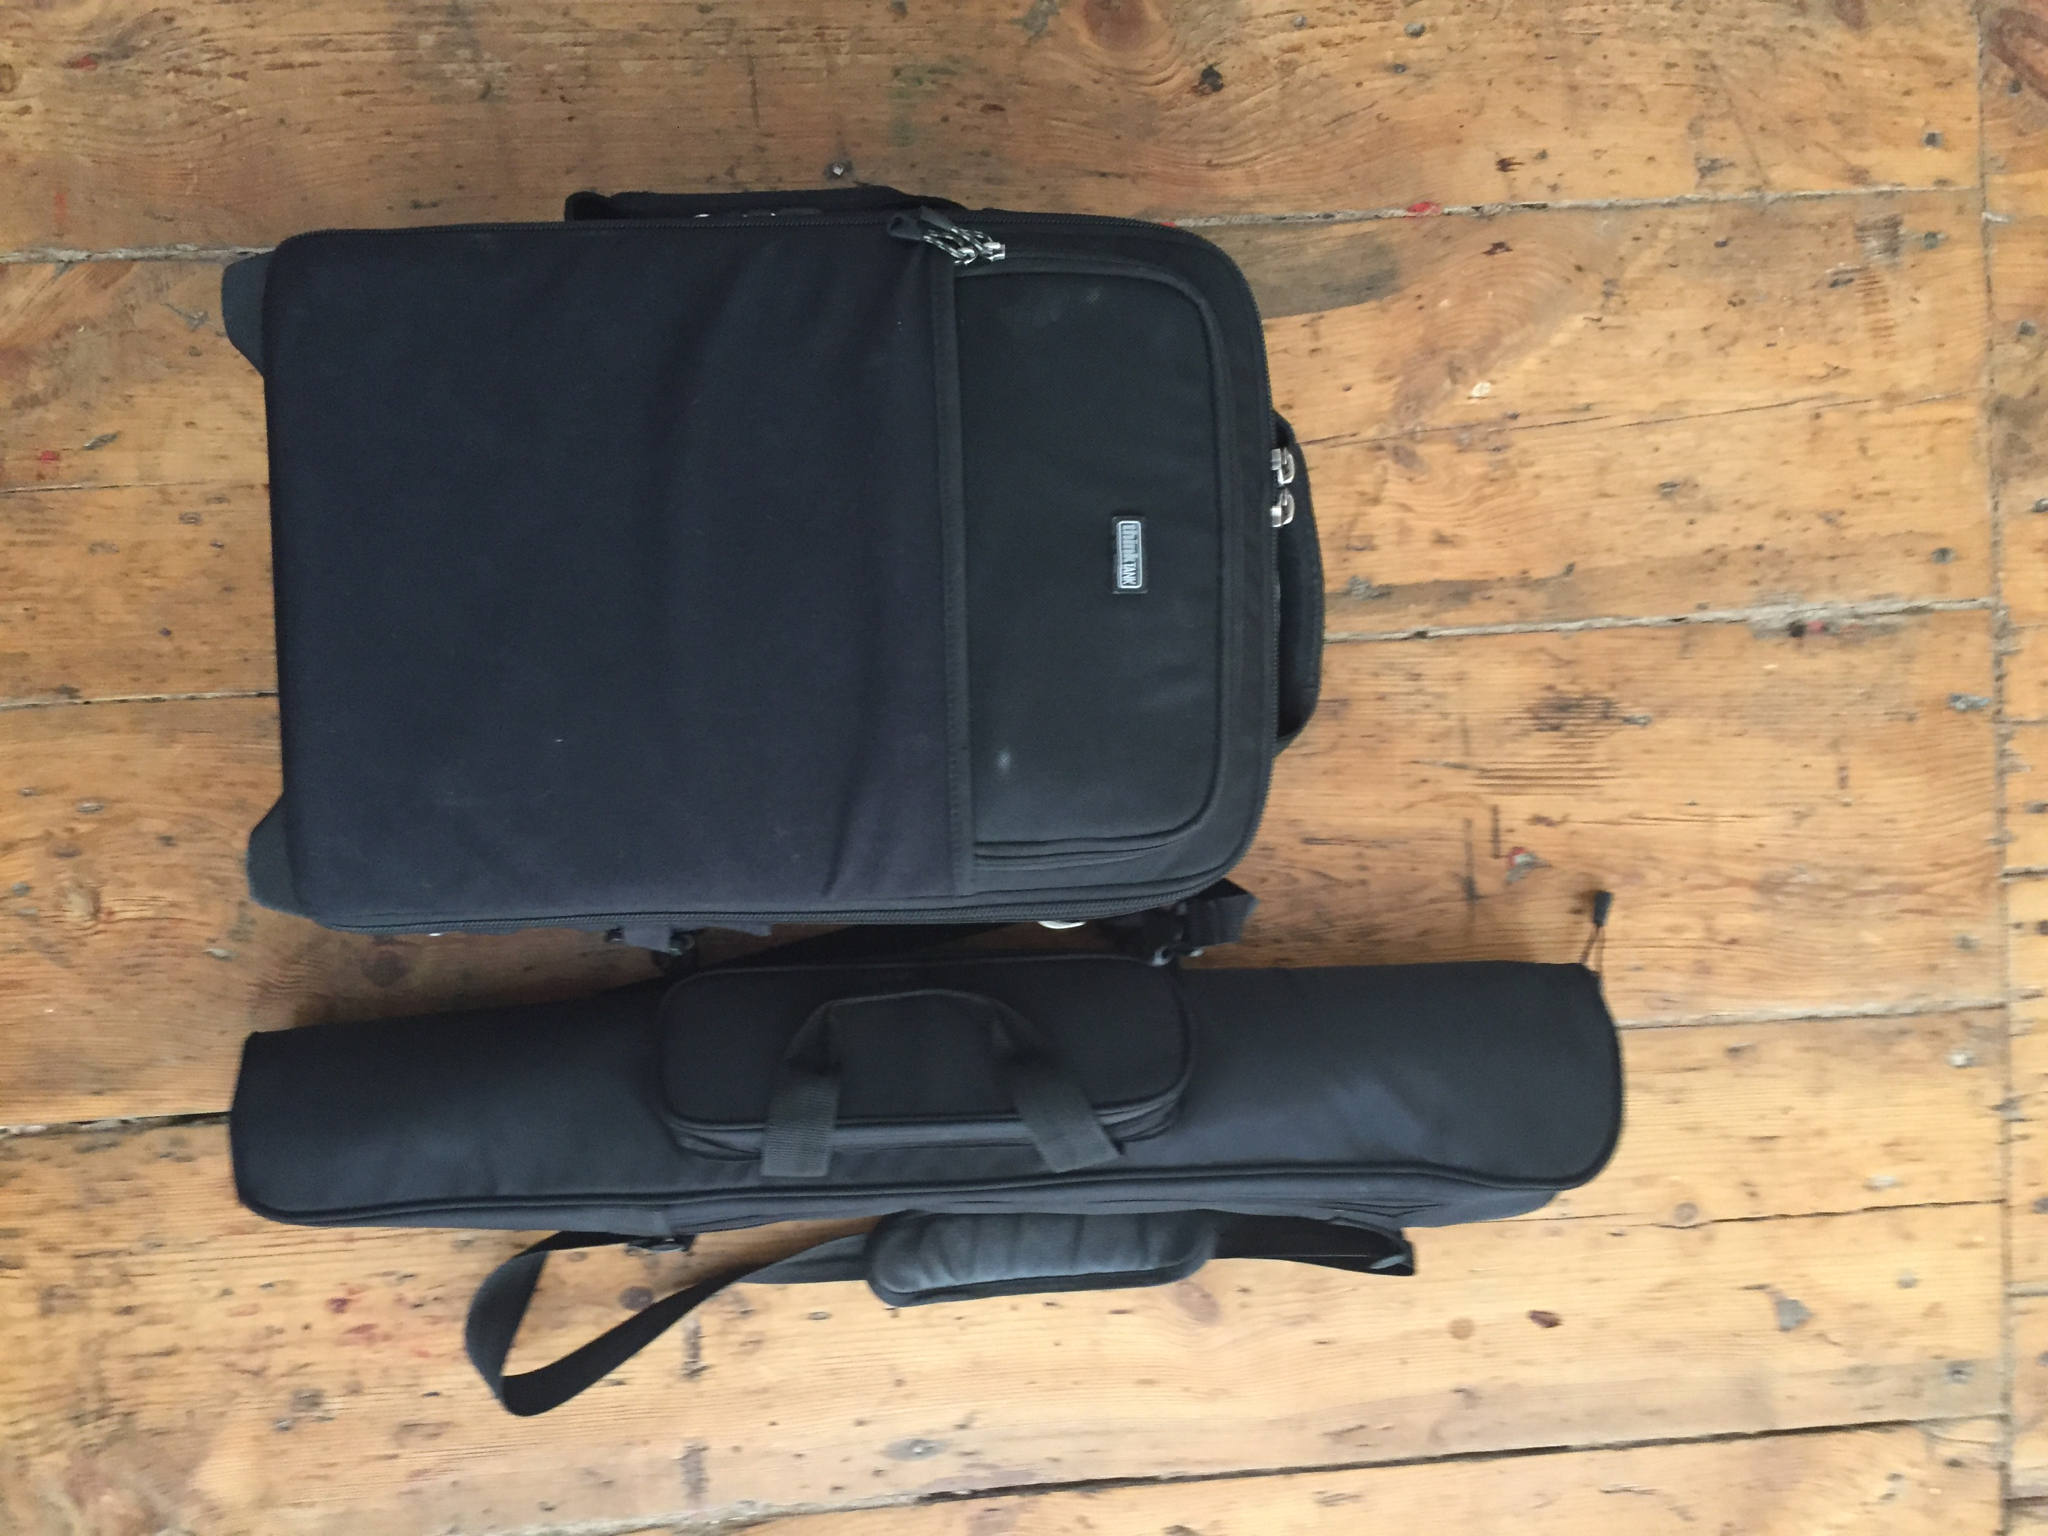 ThinkTank Airport International V2.0 and carry case for the tripod and light stand.